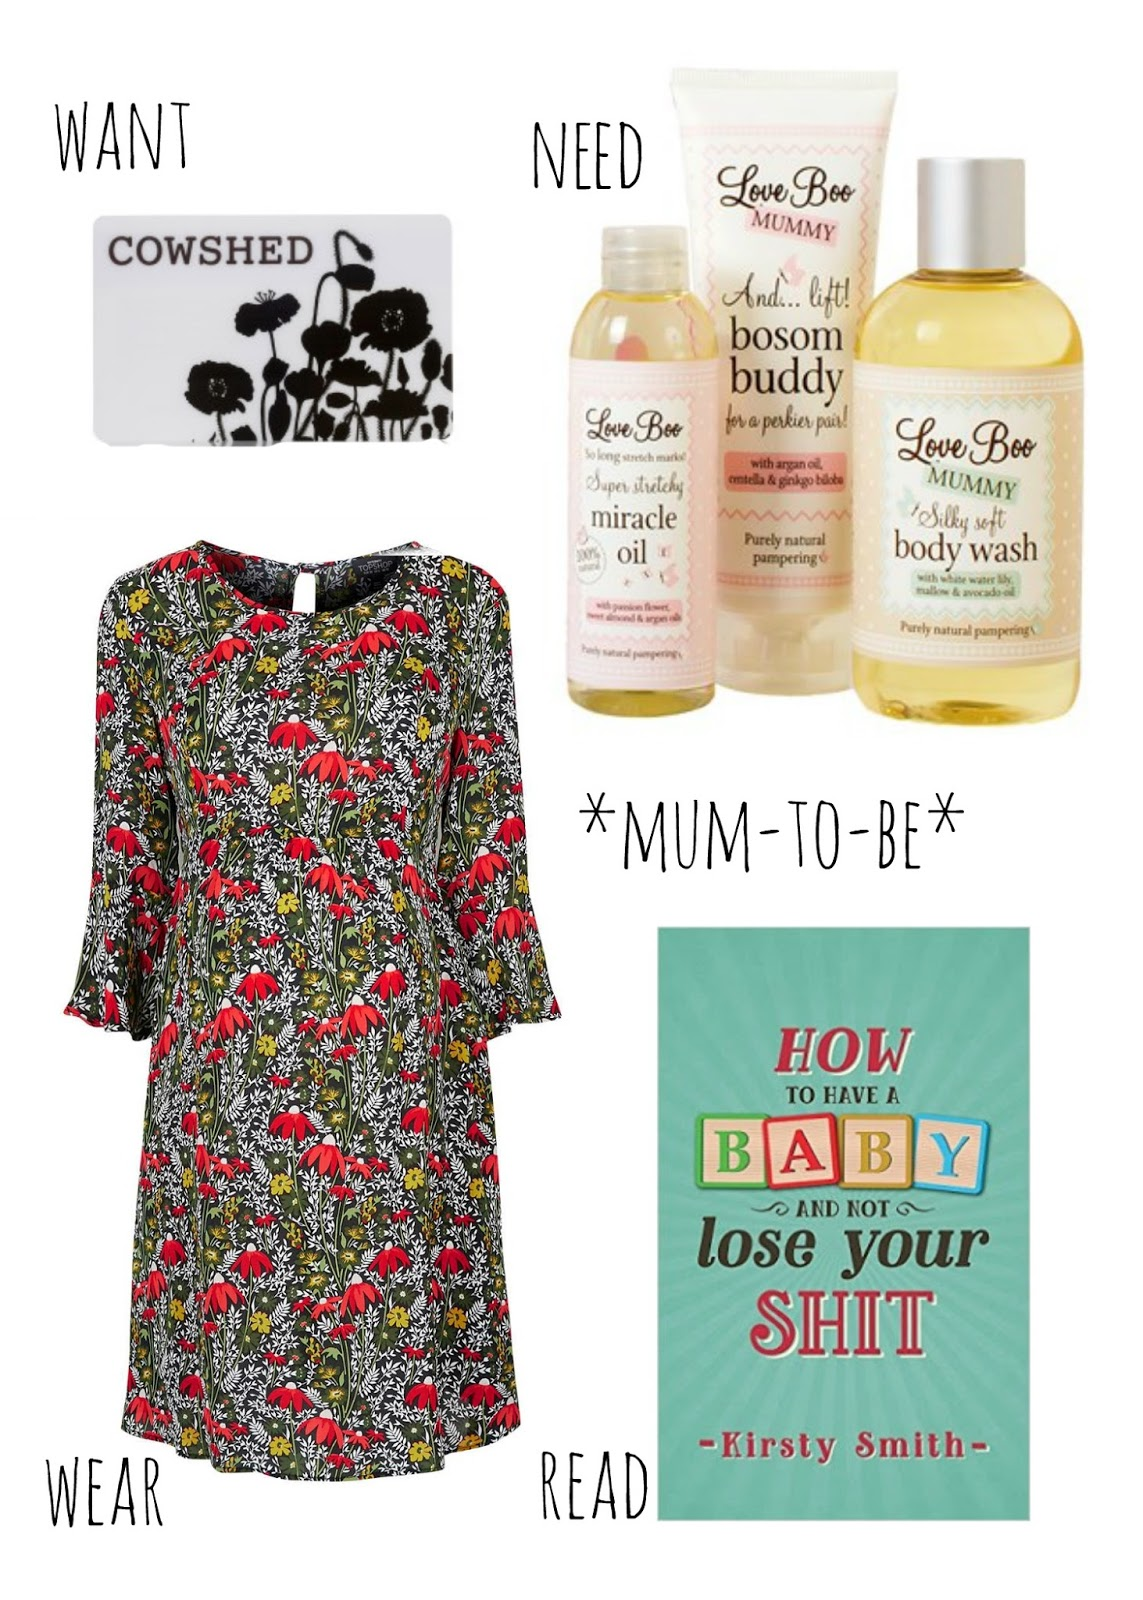 mamasVIB | V. I. BUYS: The simple Christmas gift guide for busy mums under pressure! Part 1 *LADIES FIRST*  gift guide, christmas gift guide, simple gifts, want need, wear read gifts, the gift philosophy, luxury gift ideas, bonita turner, stylist, mamasvib blog, blog, christmas ideas, styling